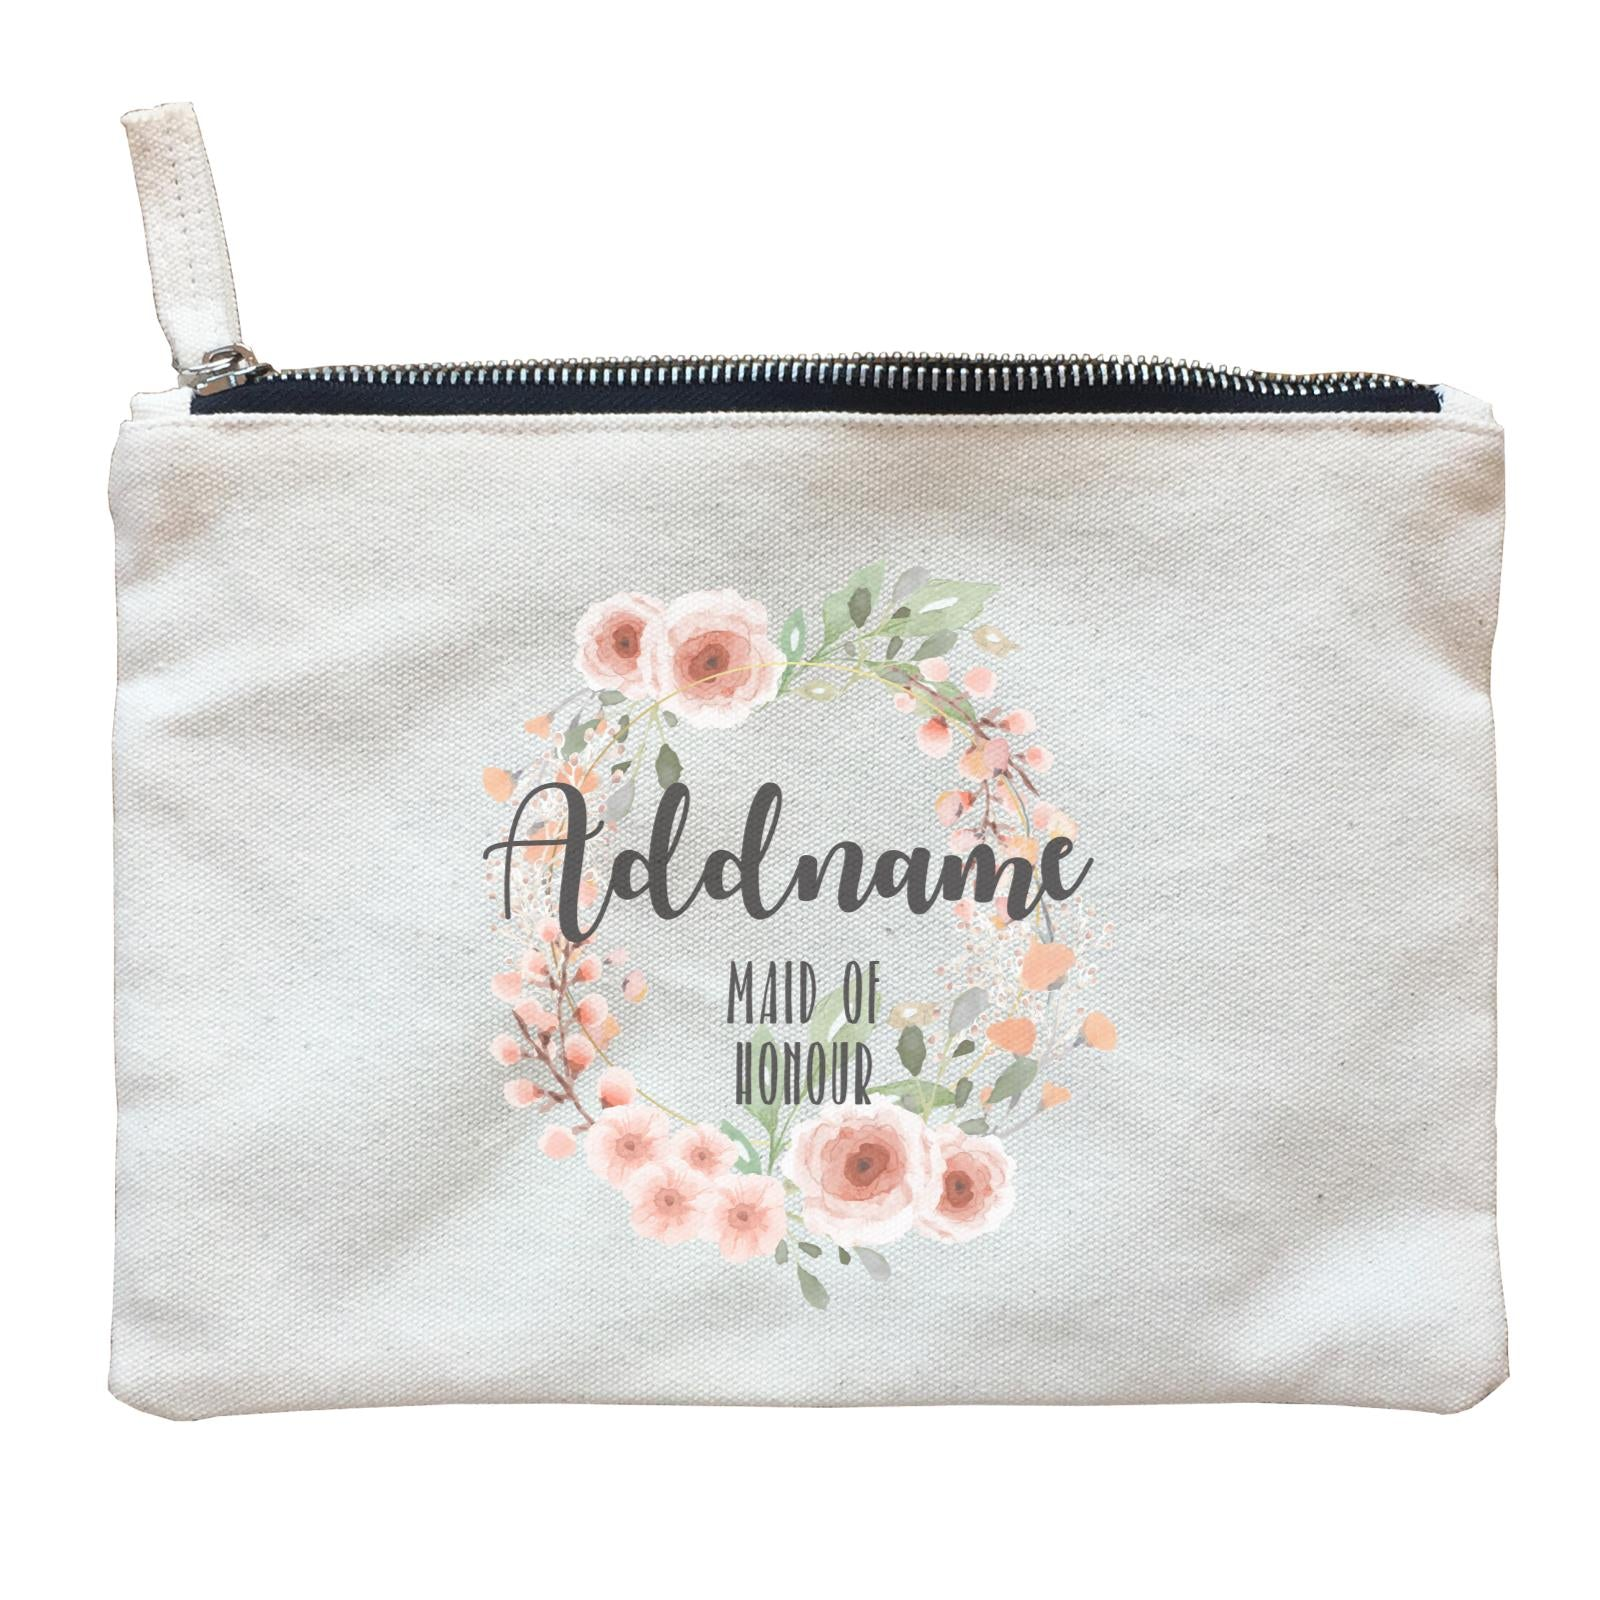 Bridesmaid Floral Sweet 2 Watercolour Flower Wreath Maid Of Honour Addname Zipper Pouch